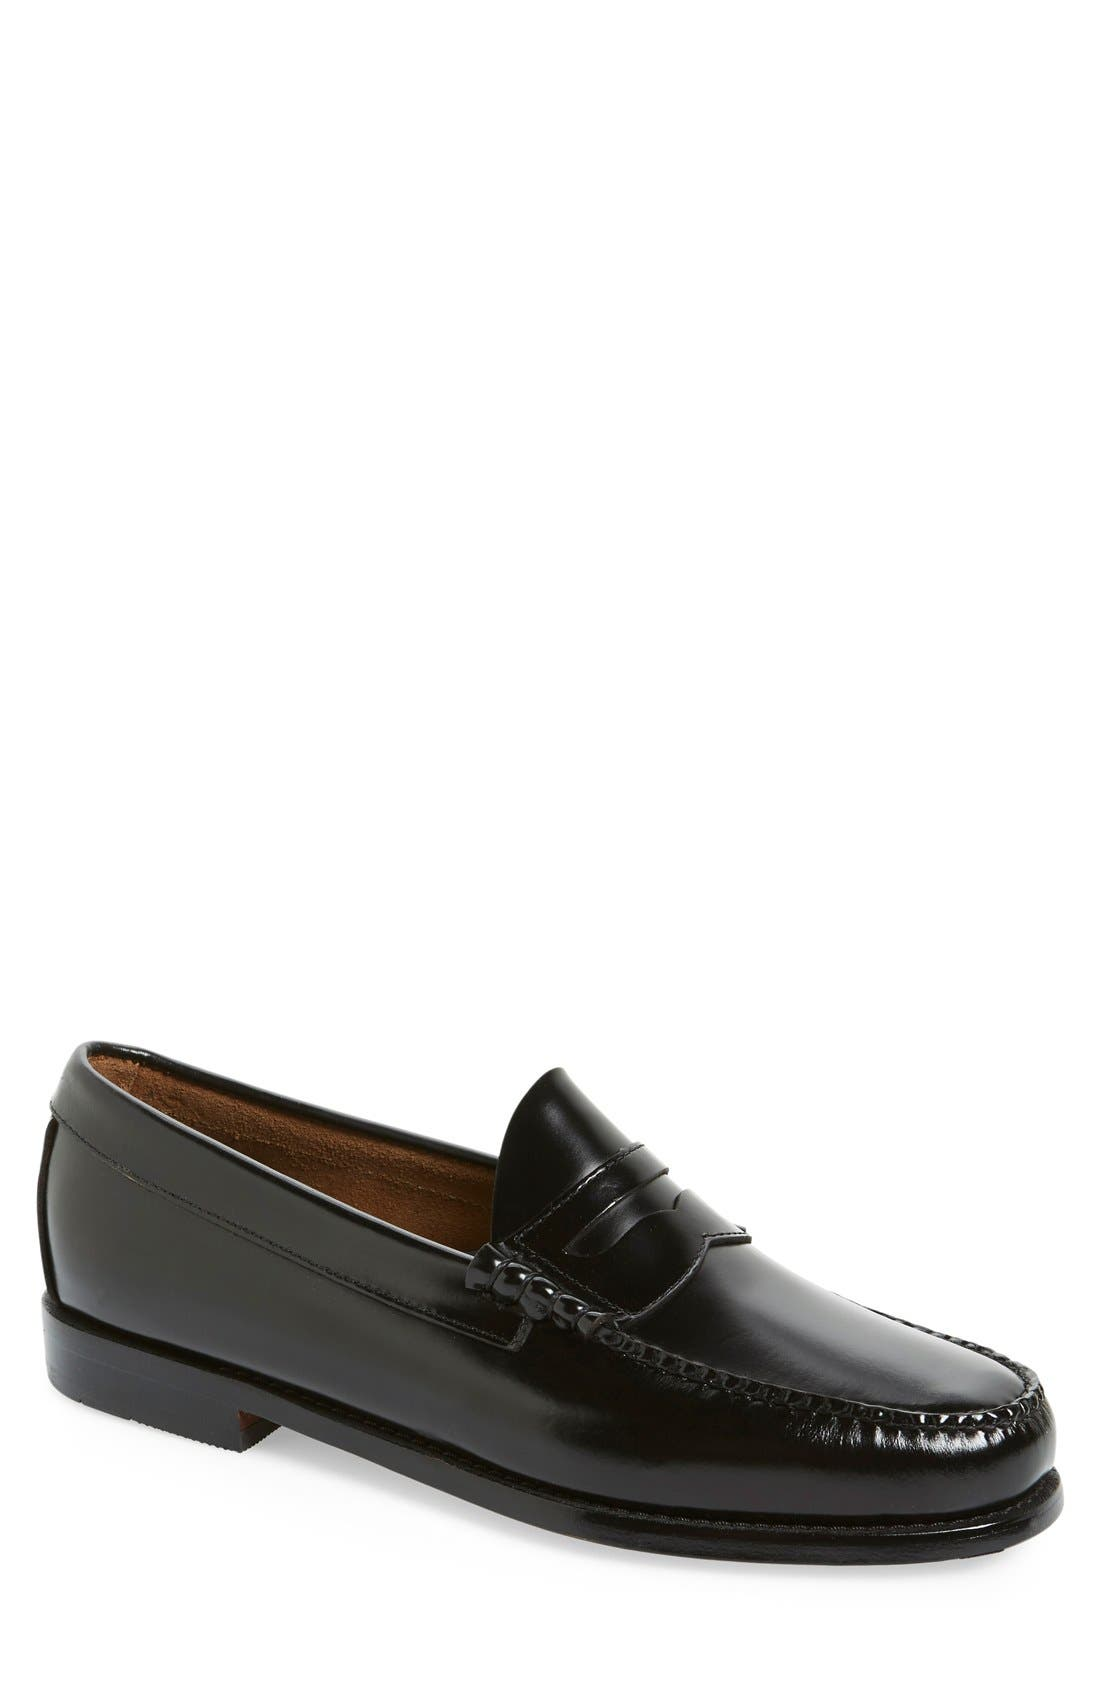 'Larson - Weejuns' Penny Loafer,                         Main,                         color, BLACK LEATHER